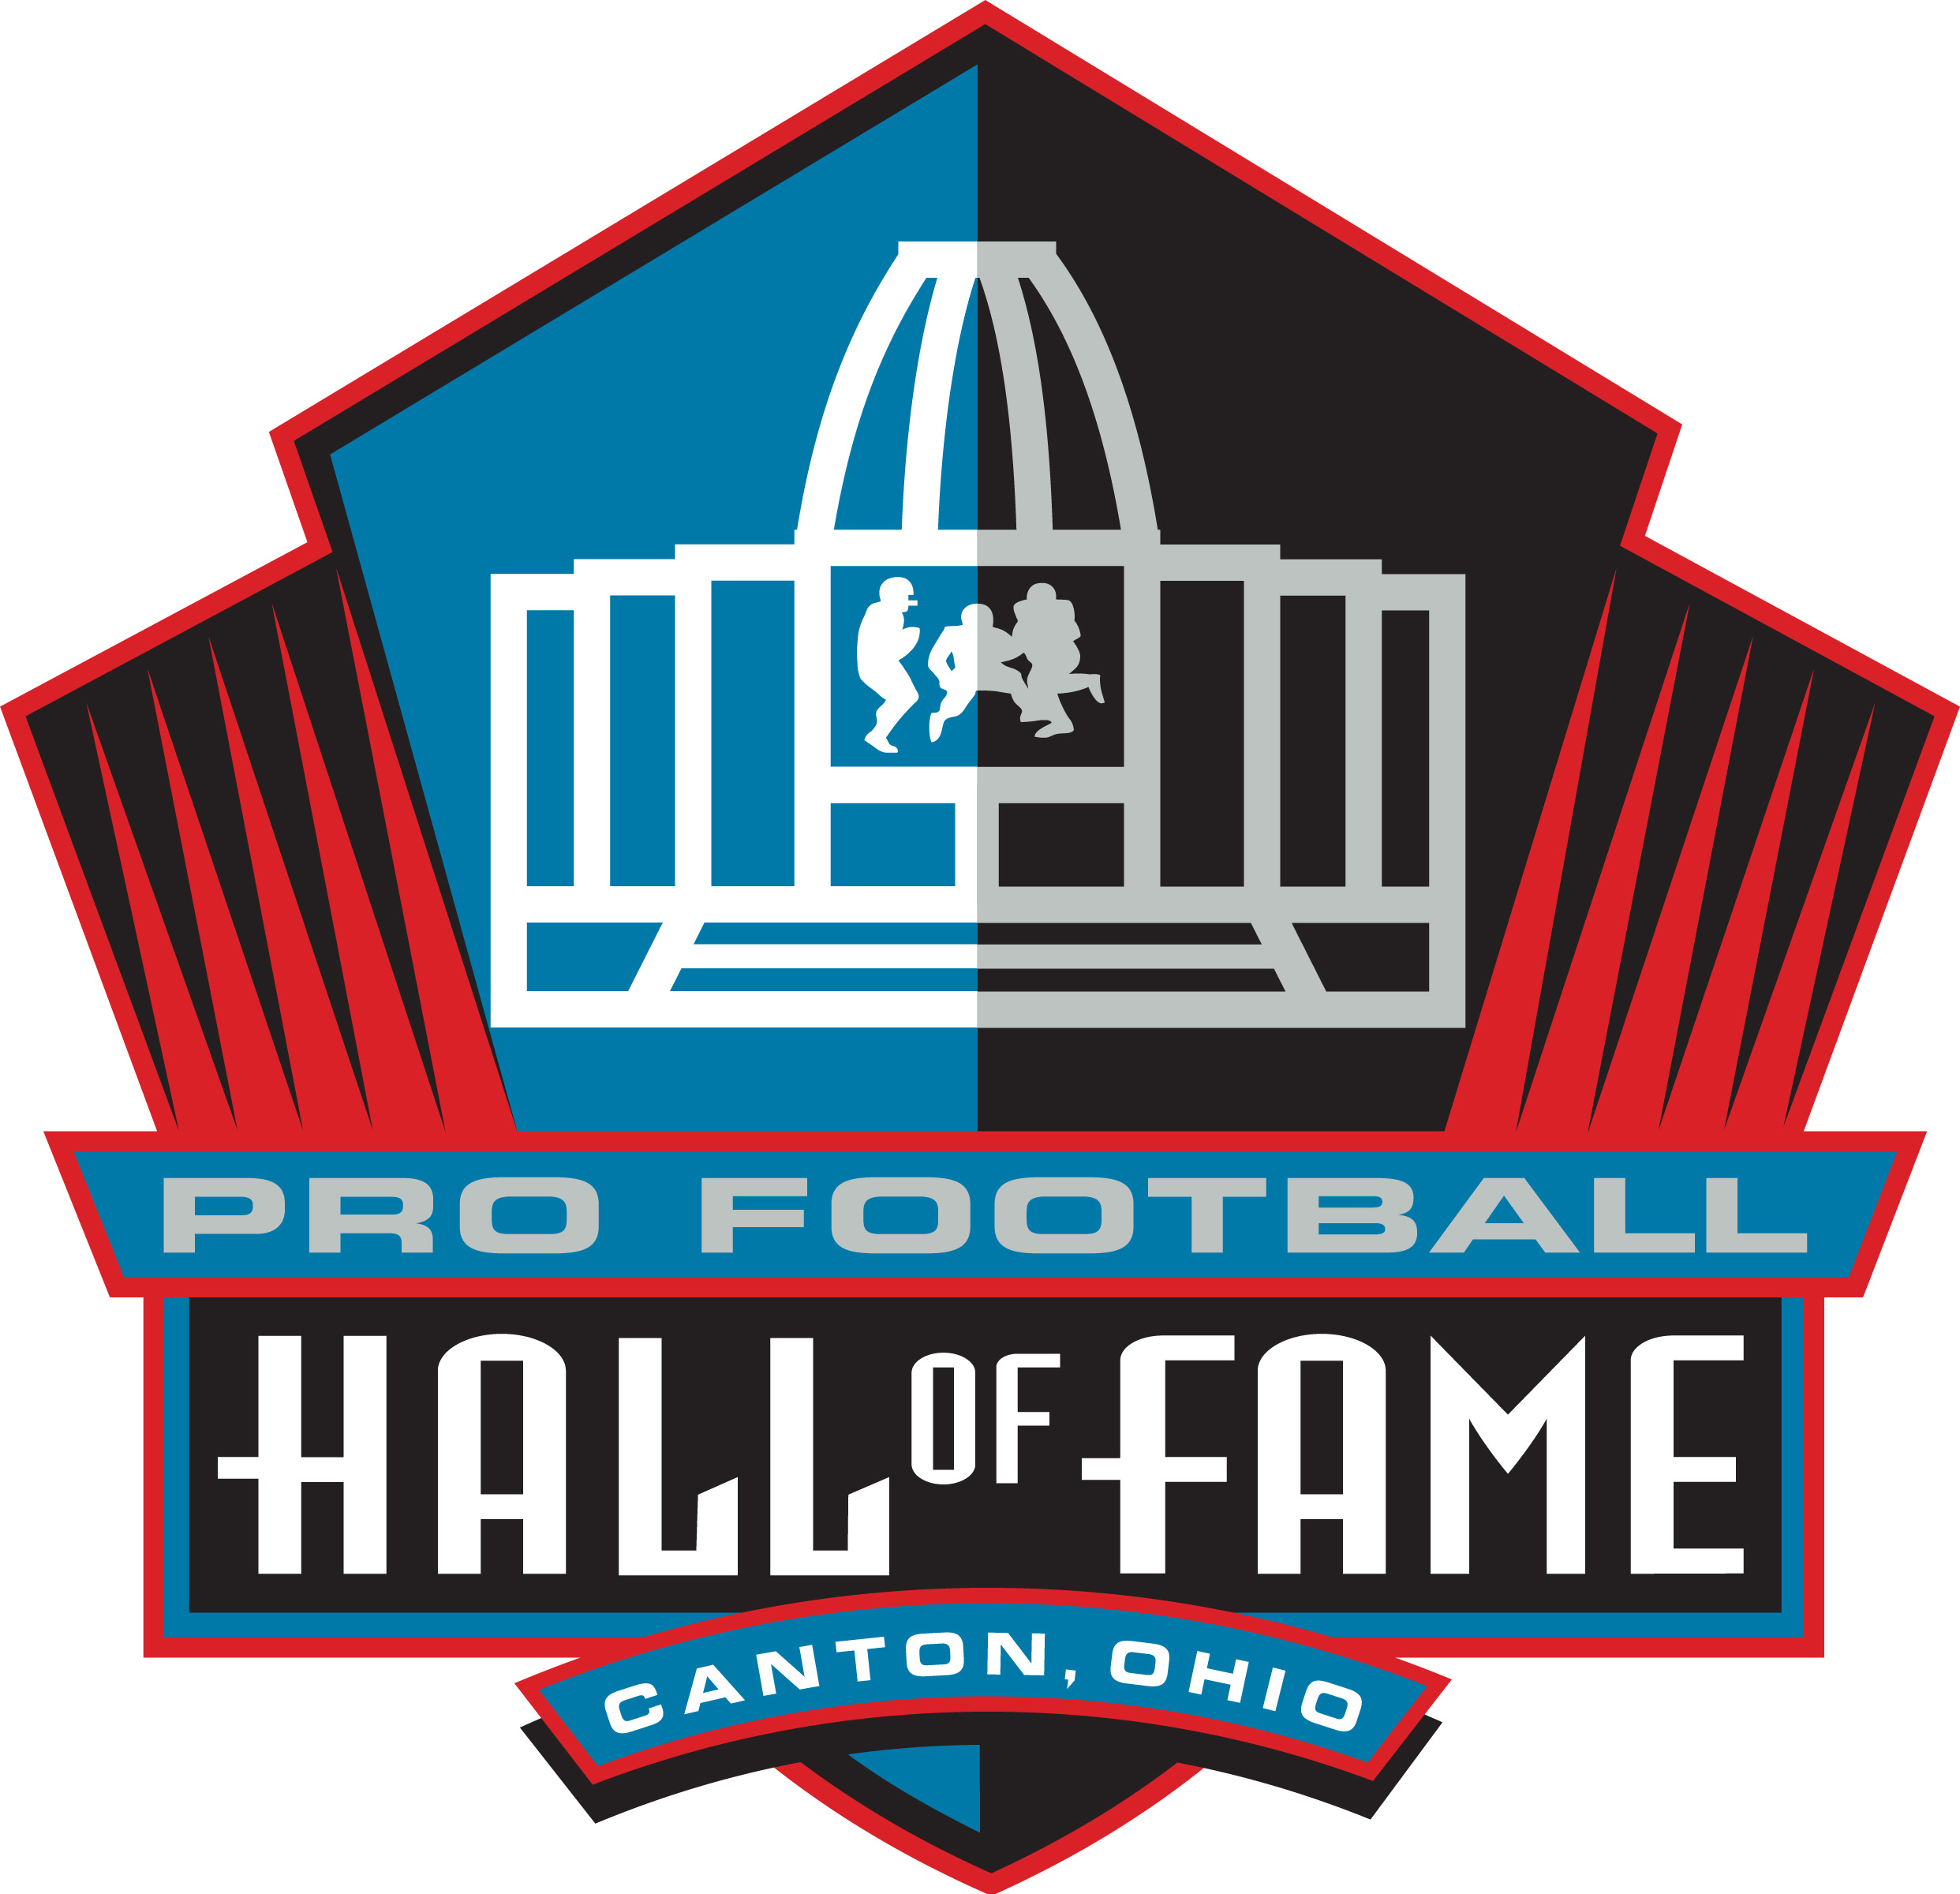 Pro-Football-Hall-of-Fame